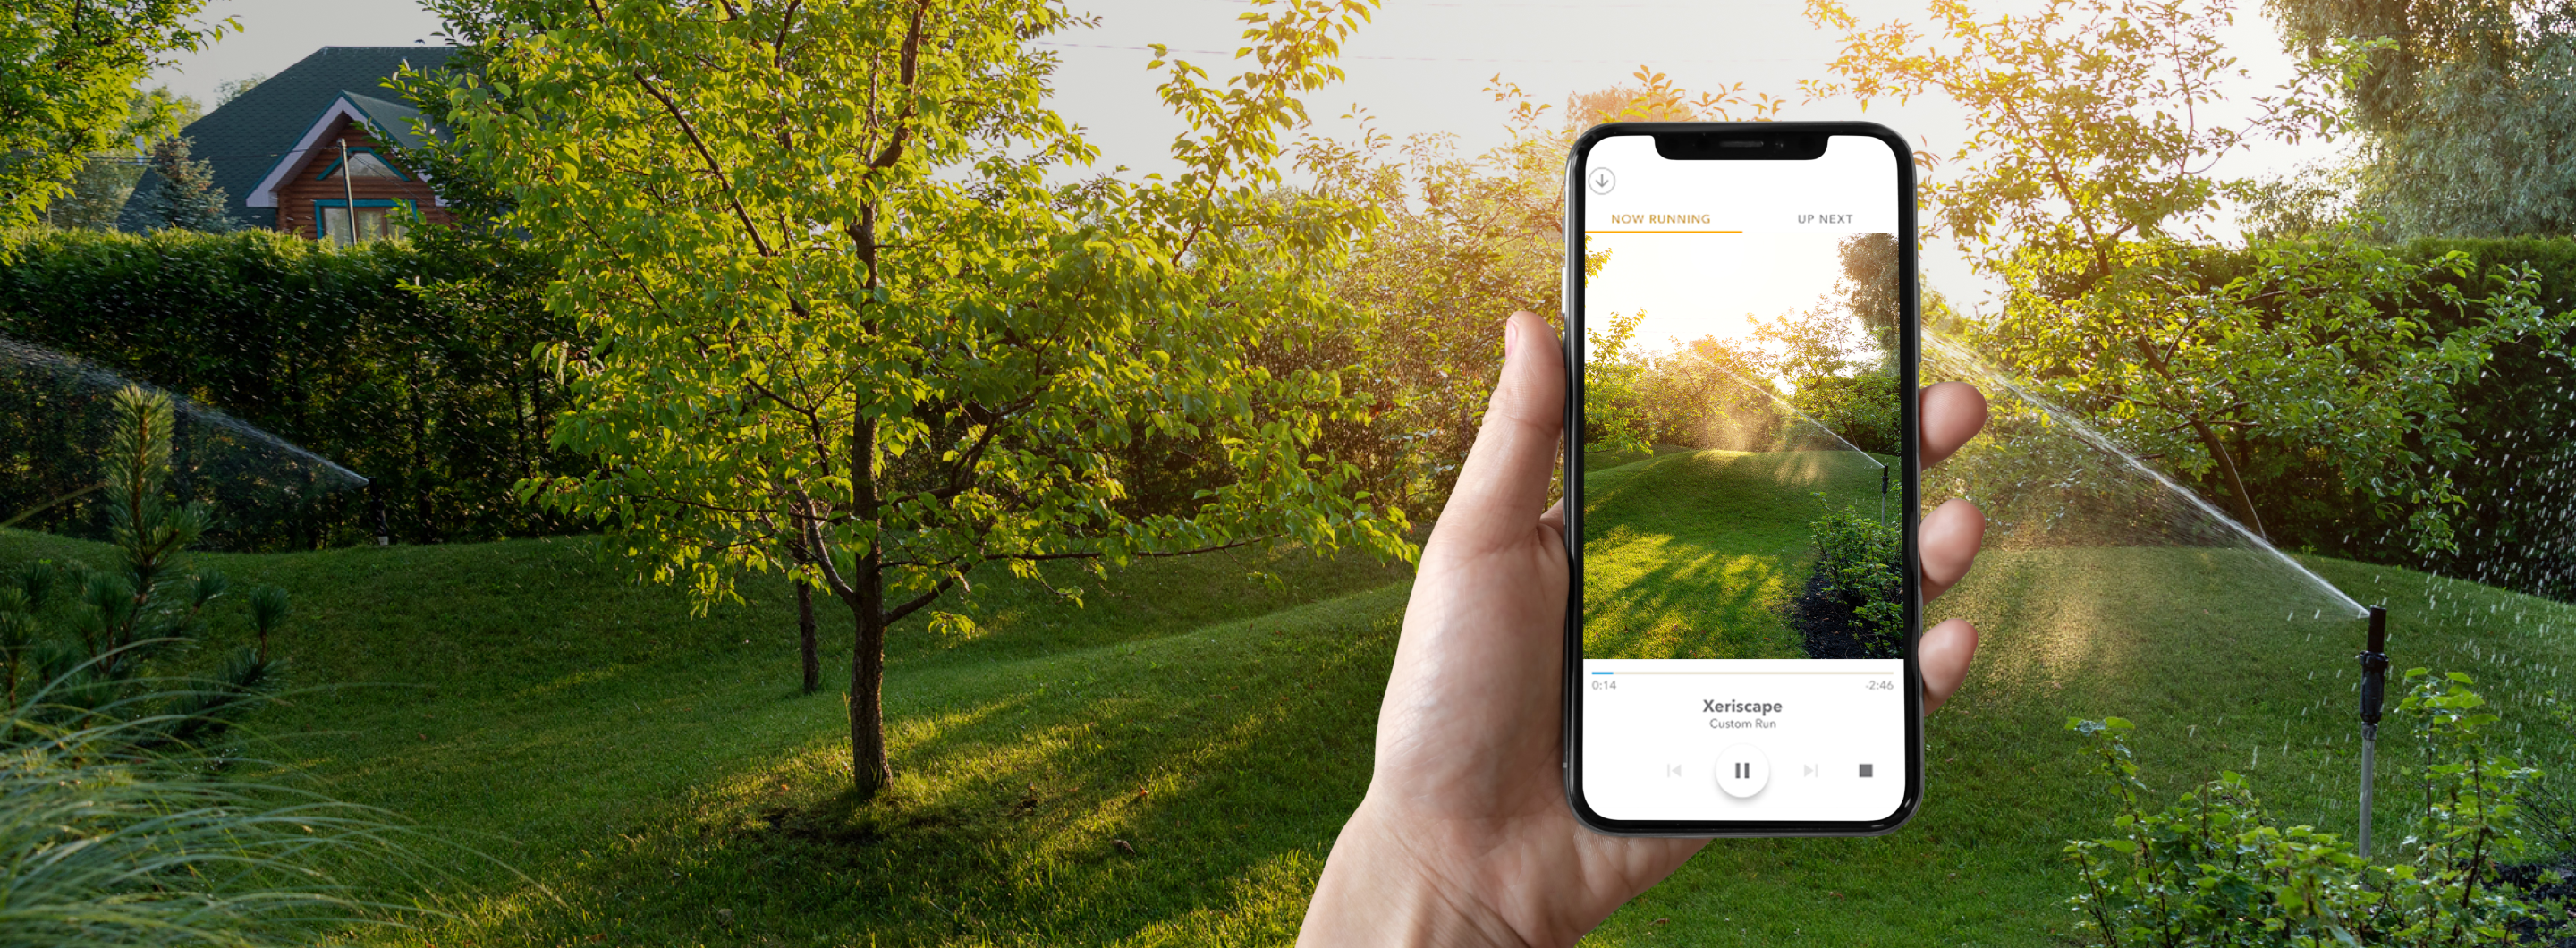 Give your yard the benefits of an app-enabled green thumb.